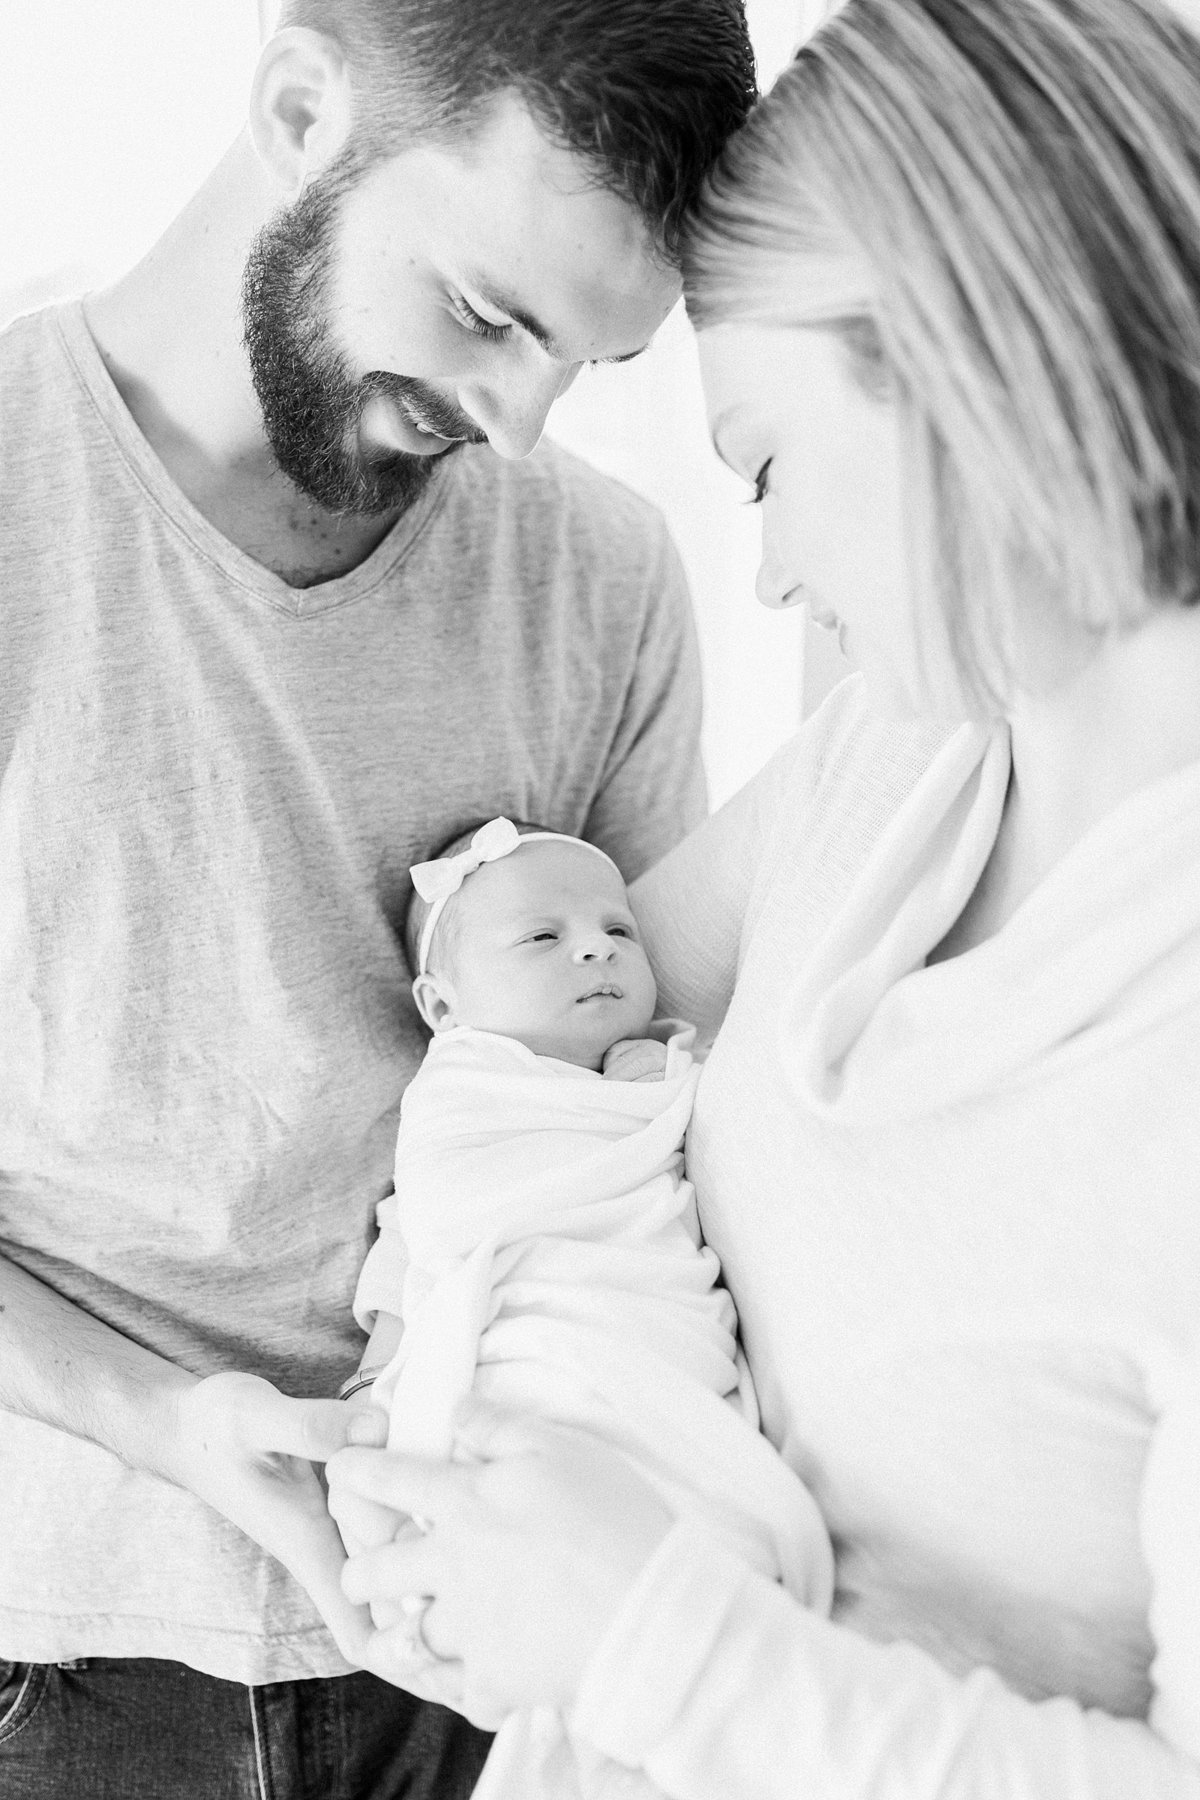 Charleston-Newborn-Photographer-Charleston-Lifestyle-Newborn-Photography-Mount-Pleasant-Newborn-Photographer-Lifestyle-Newborn-Session-13